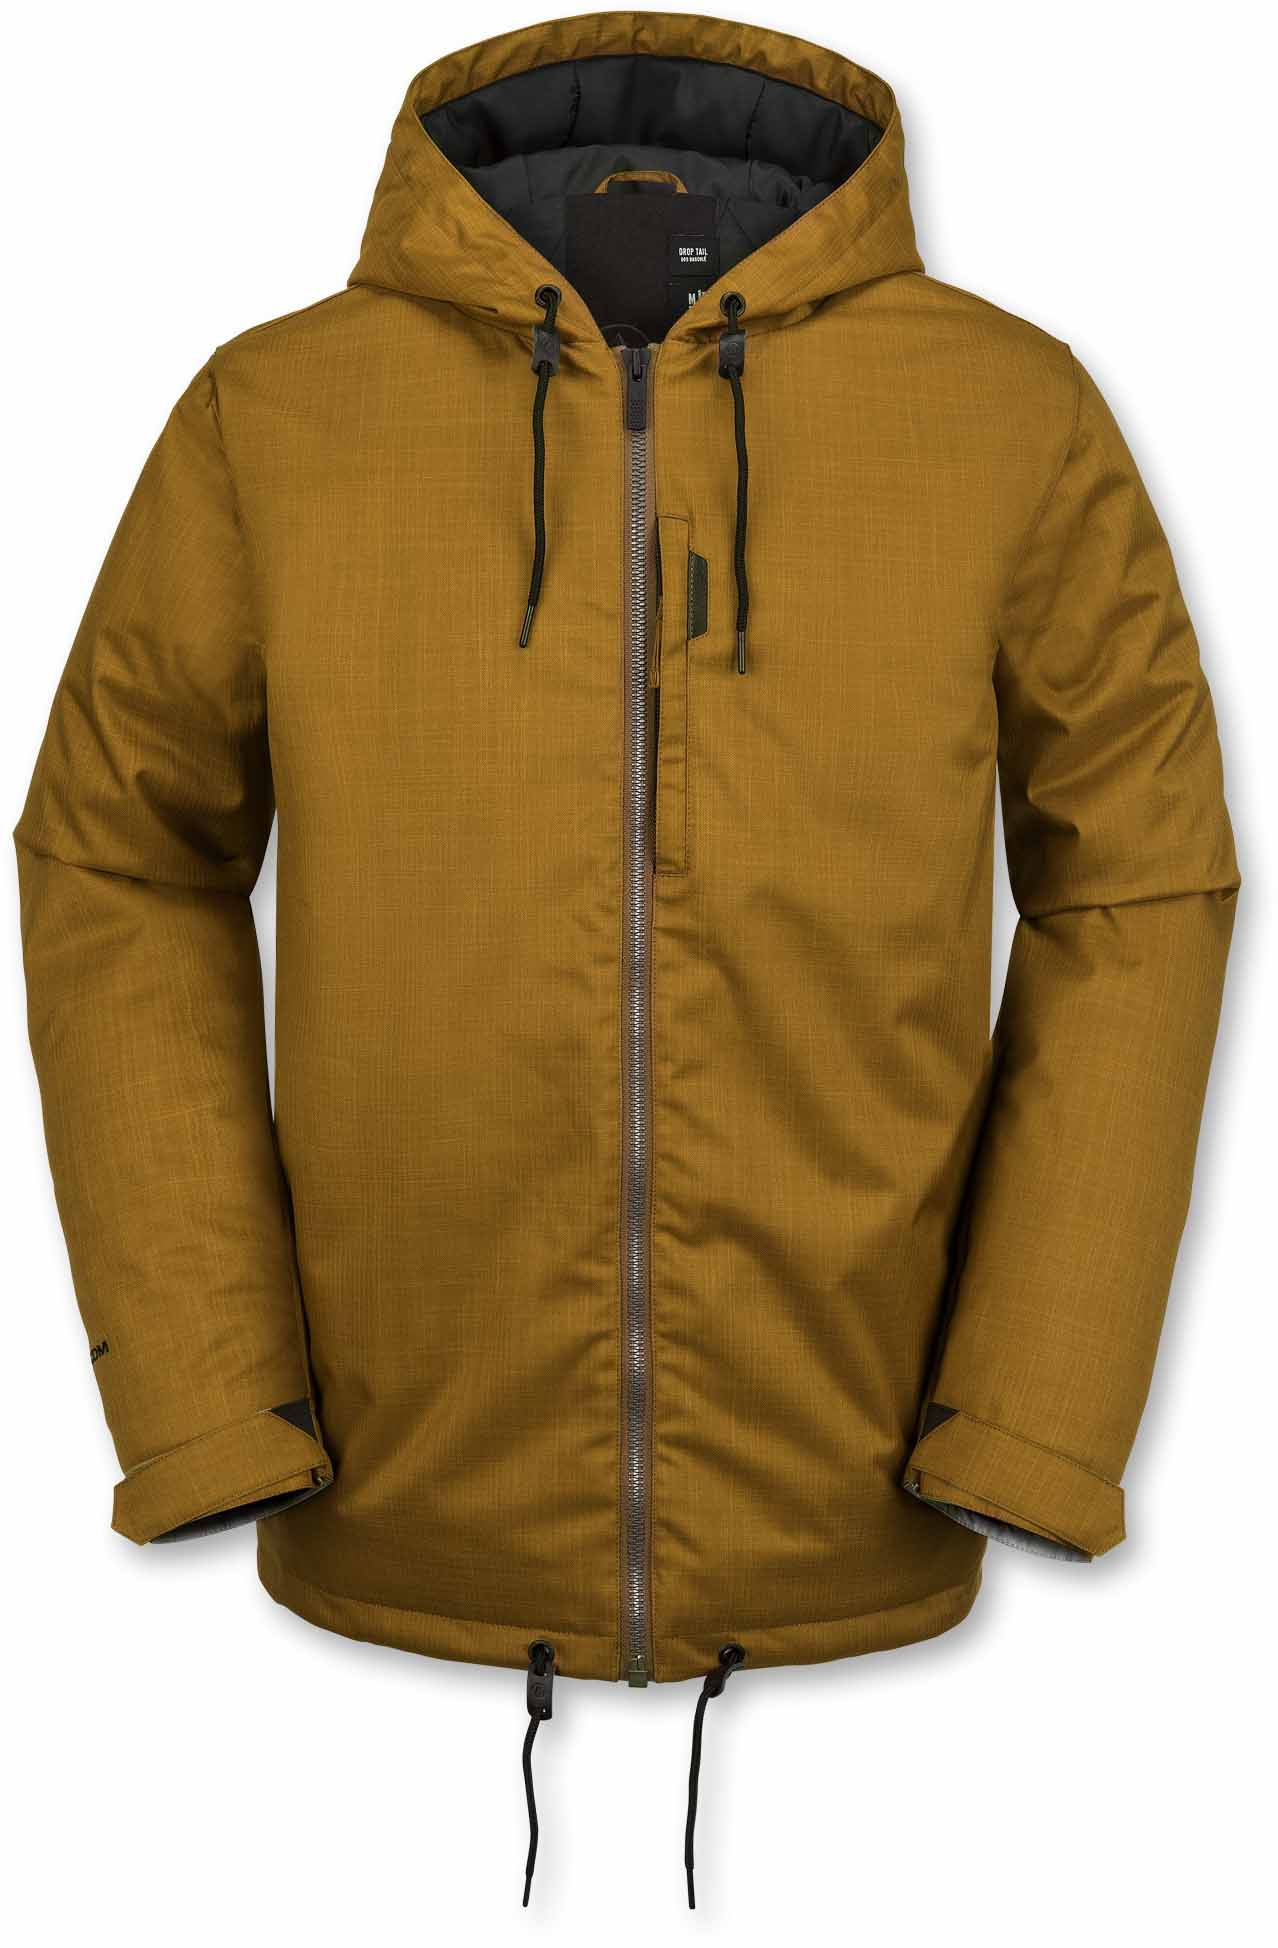 image volcom-patch-insulated-jacket-caramel-jpg